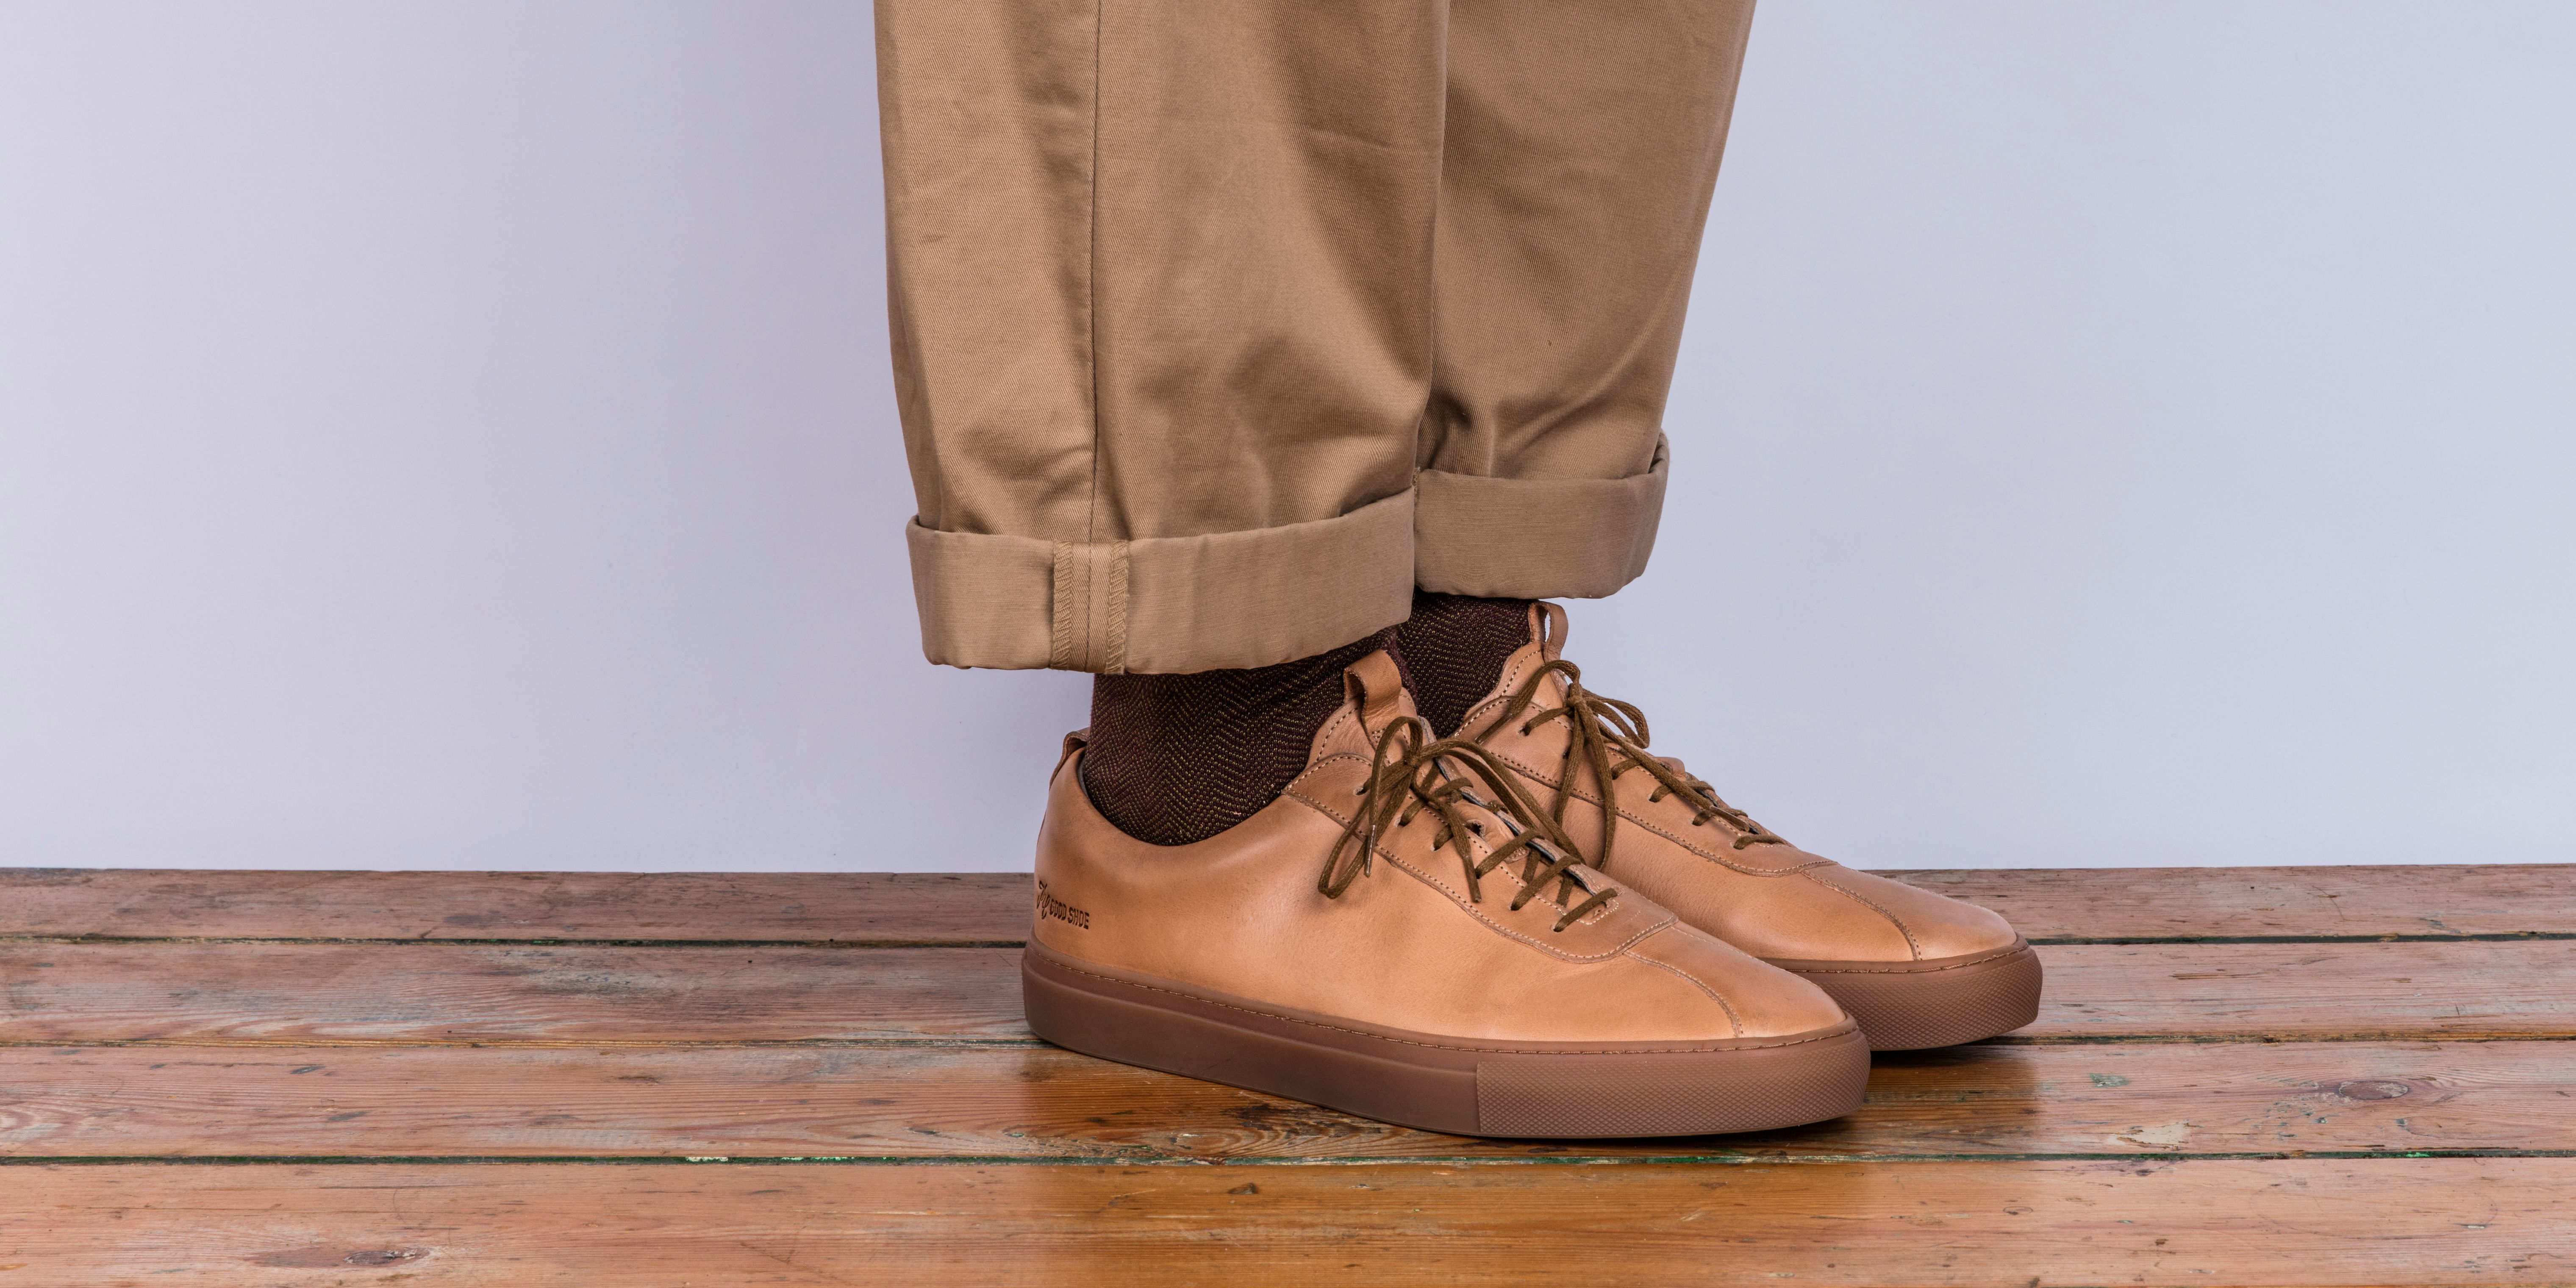 Sneaker 1 in Natural Cuoio Calf Leather